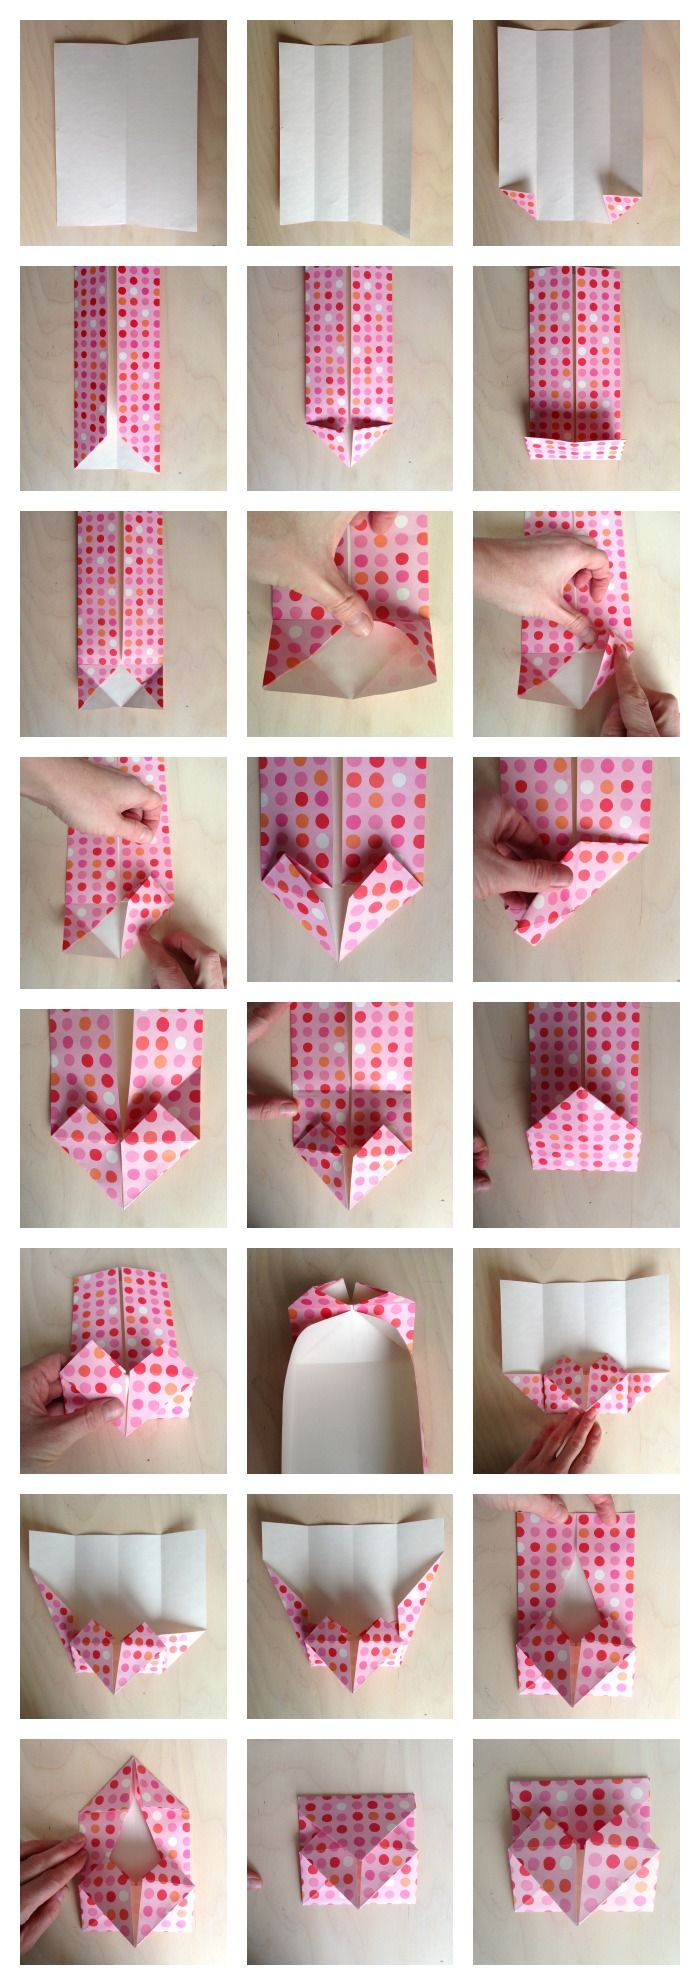 How To Make An Origami Heart Envelope For Secret Notes Or To Use As A  Valentine